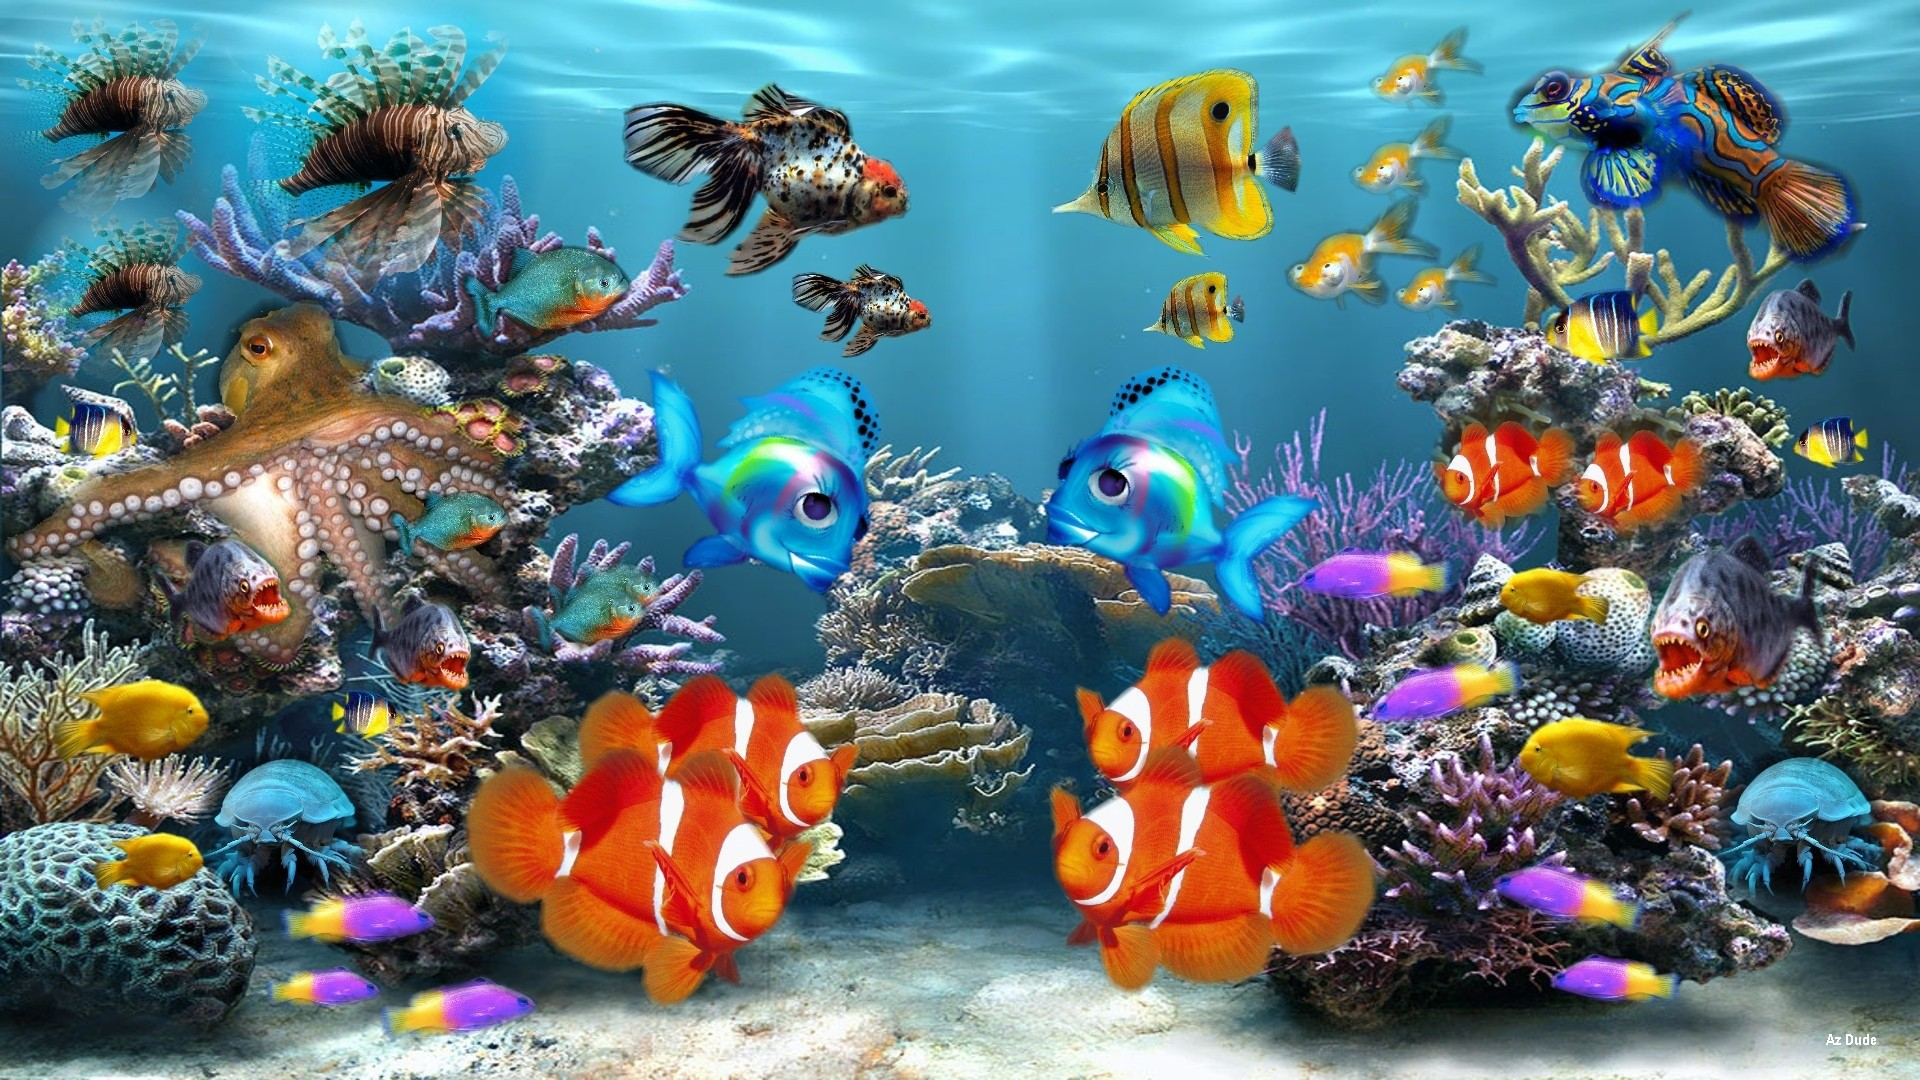 Ipad Iphone Hd Wallpaper Free: Aquarium Background ·① Download Free Wallpapers For